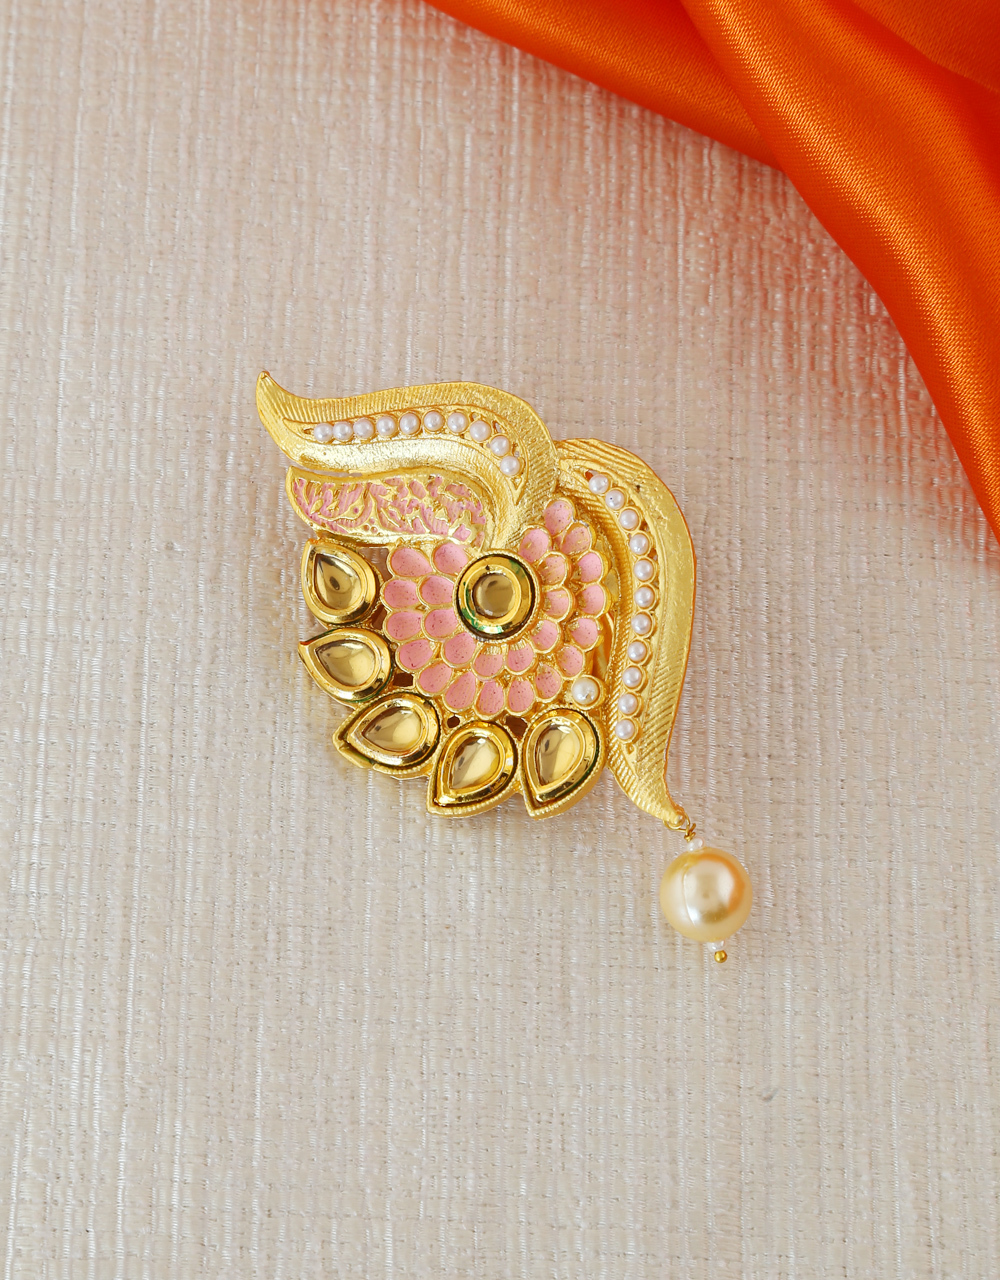 Pink Colour Gold Finish Fancy Sari Pin For Wedding